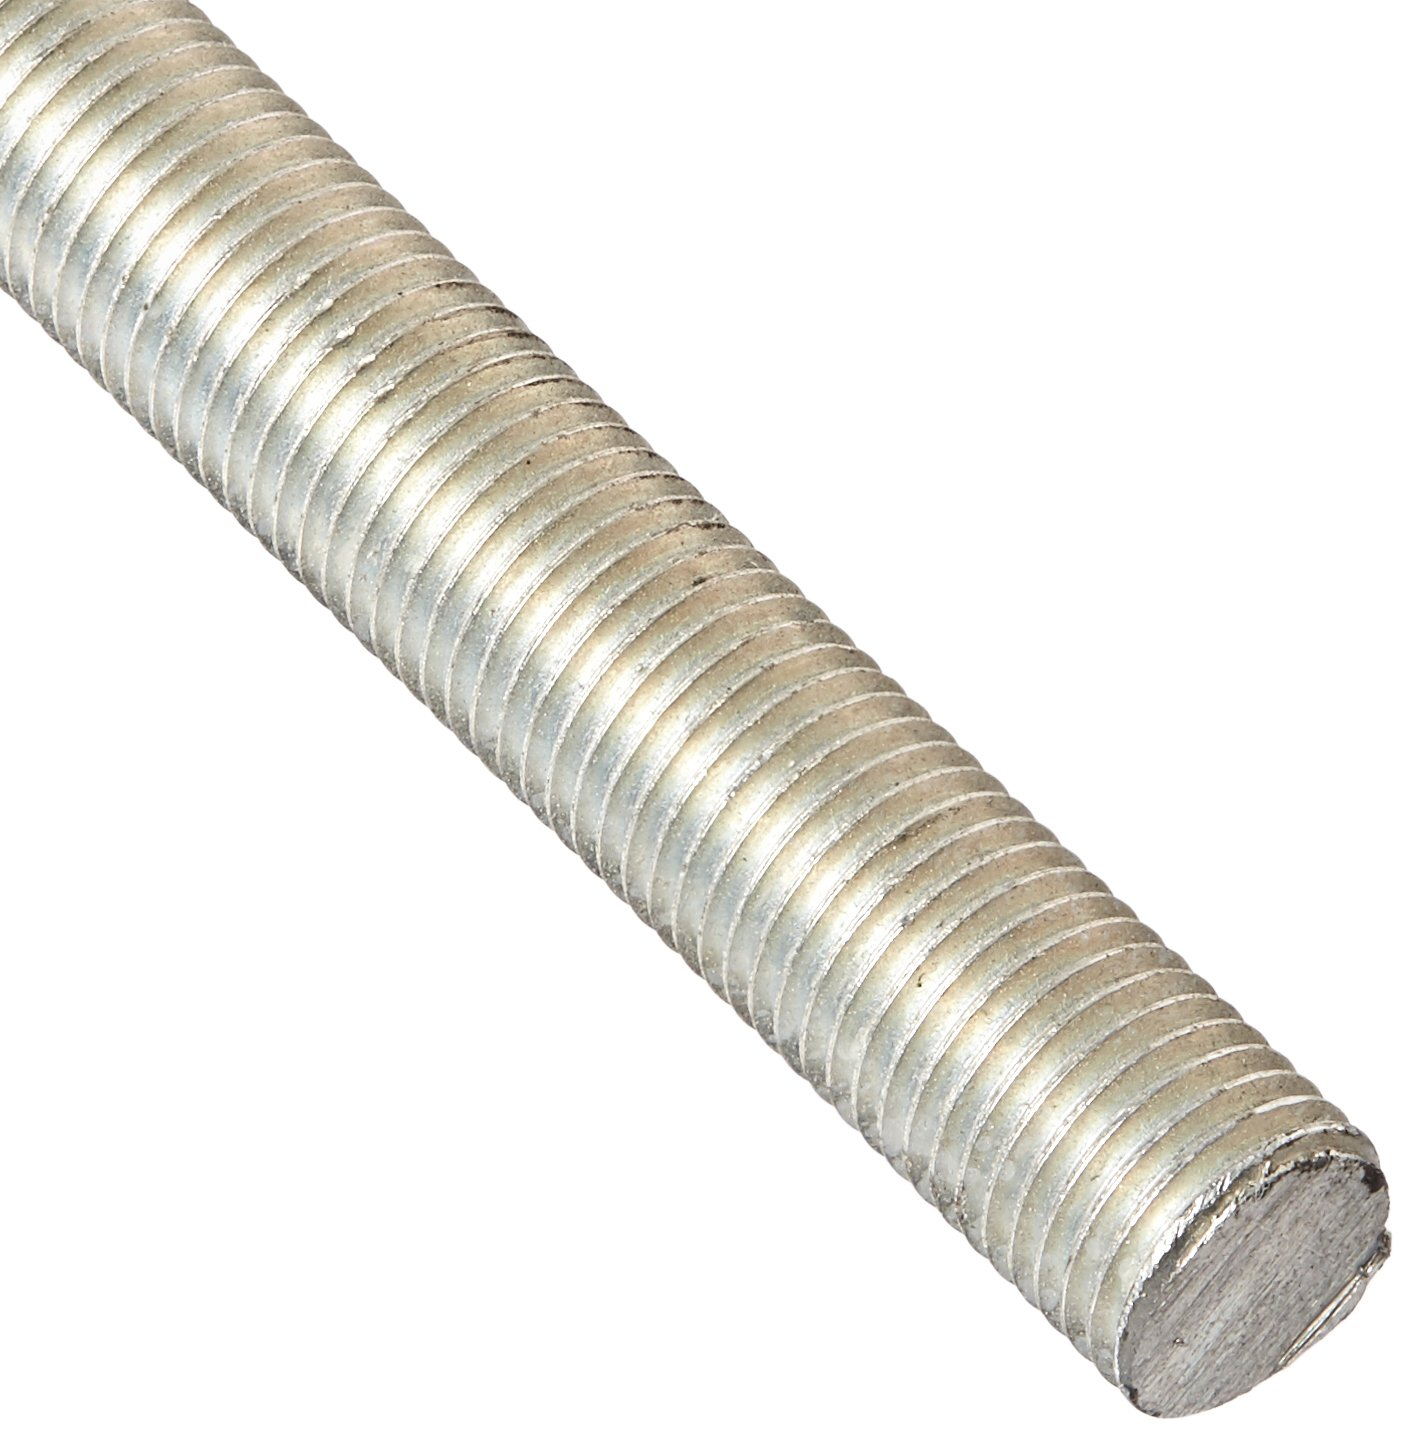 Low Carbon Steel National Fine 7//16-20 Thread 24 Length Electro Zinc Plated Precision Brand 039-37280 Threaded Rod